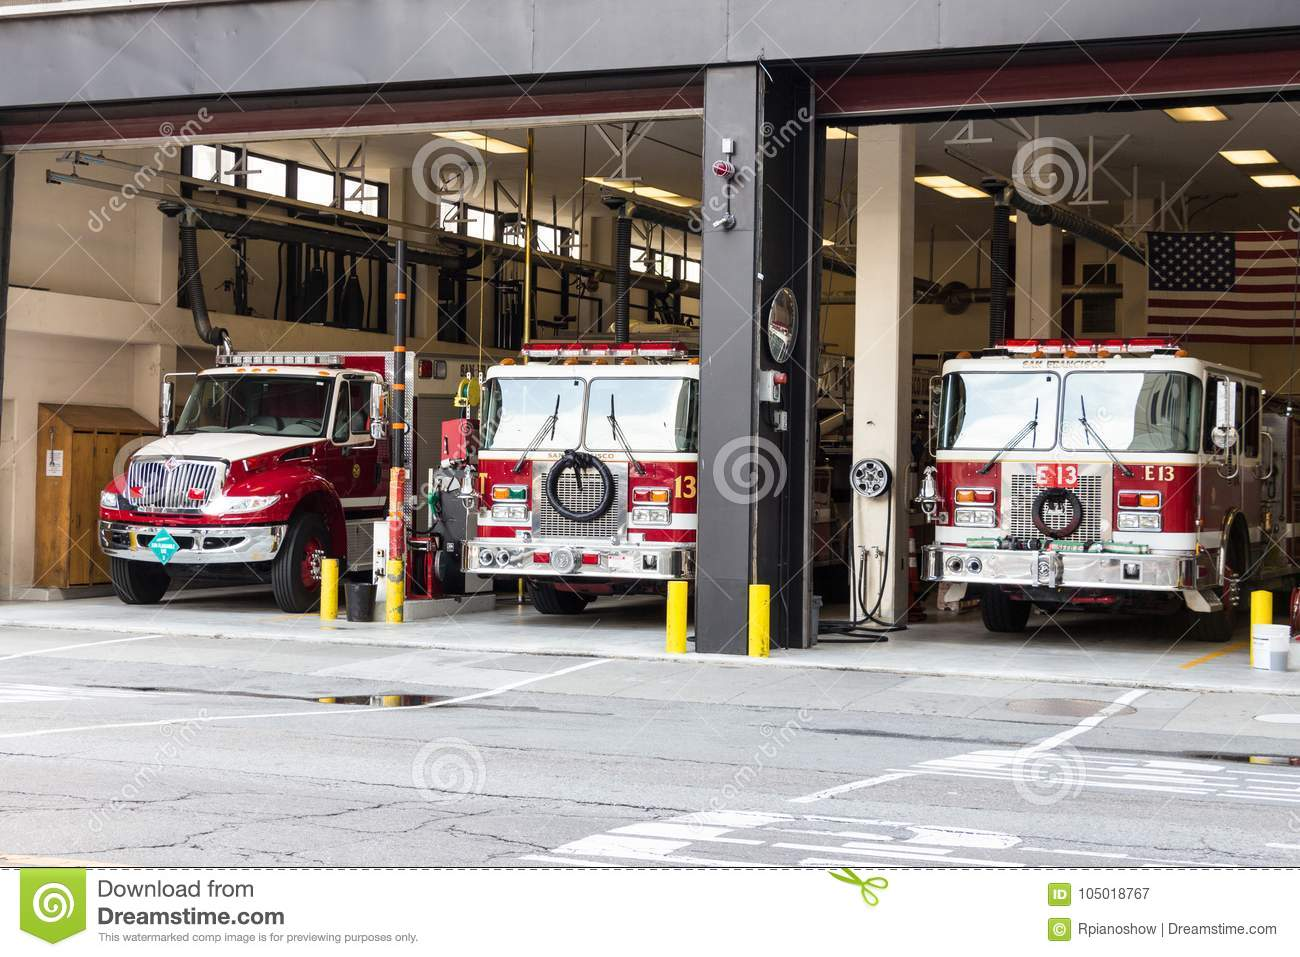 Fire truck at San Francisco firehouse.